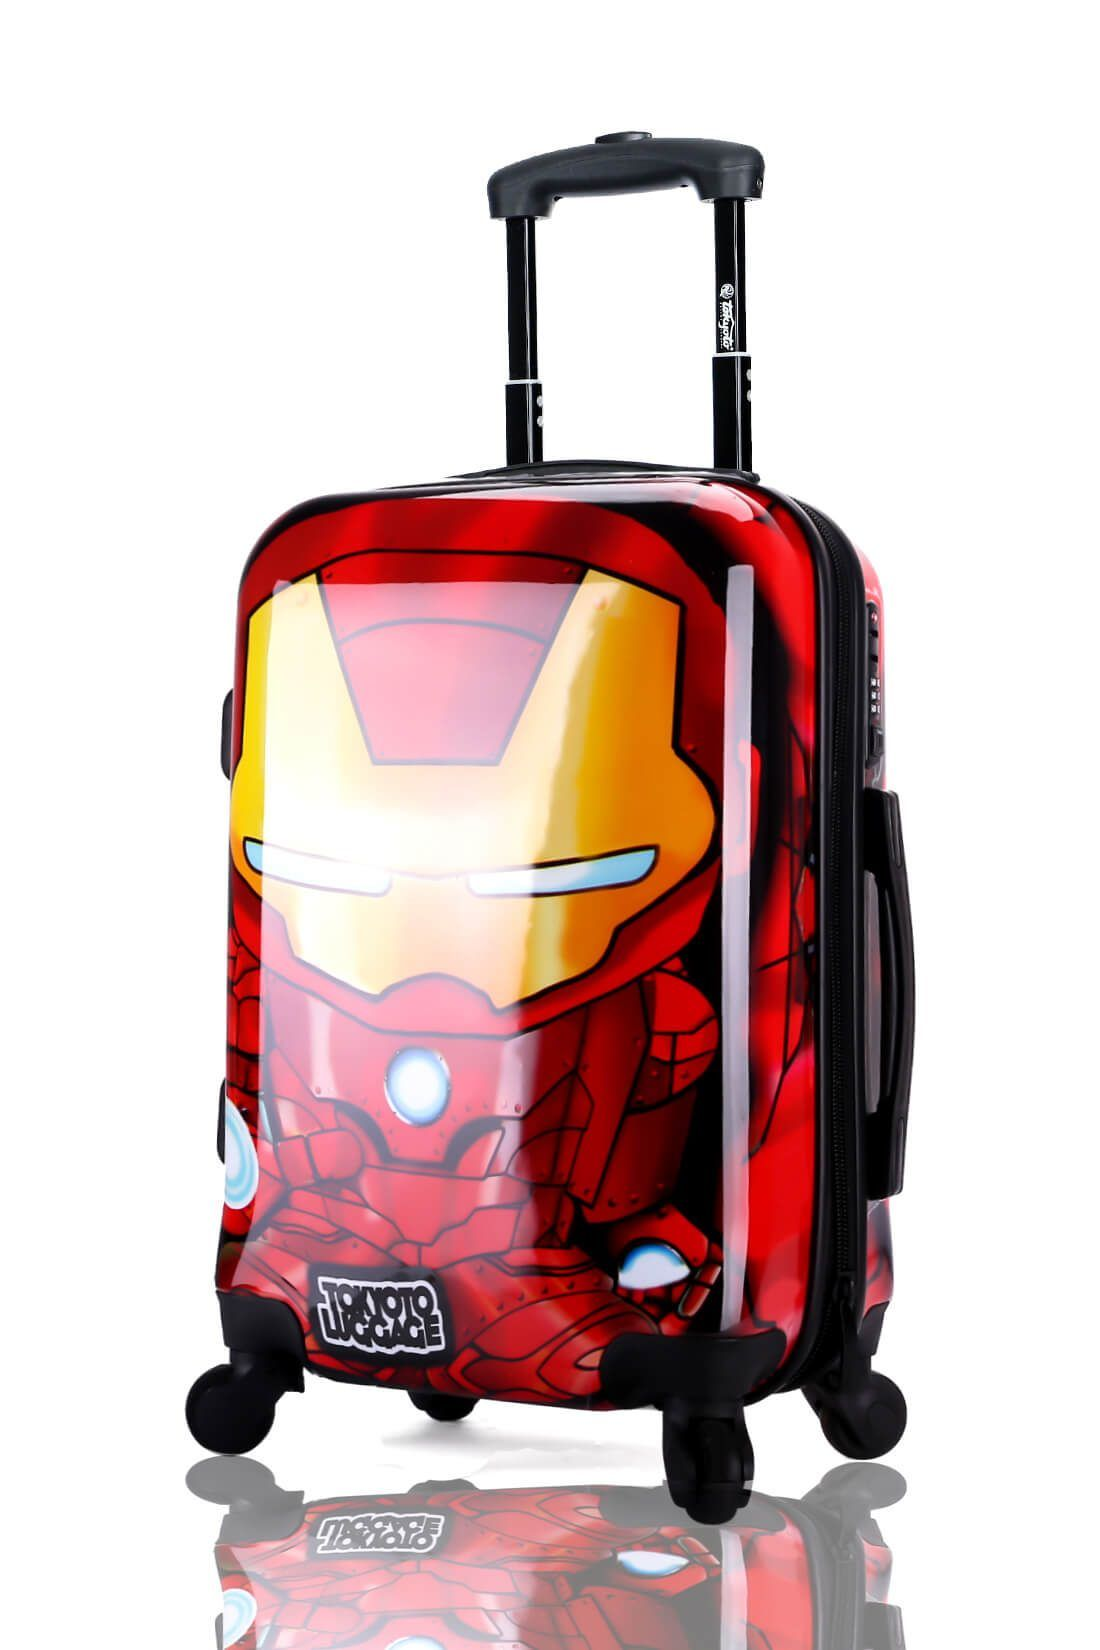 Valise Online Cabine Trolley Enfant TOKYOTO LUGGAGE Modelle IRON BOY 1